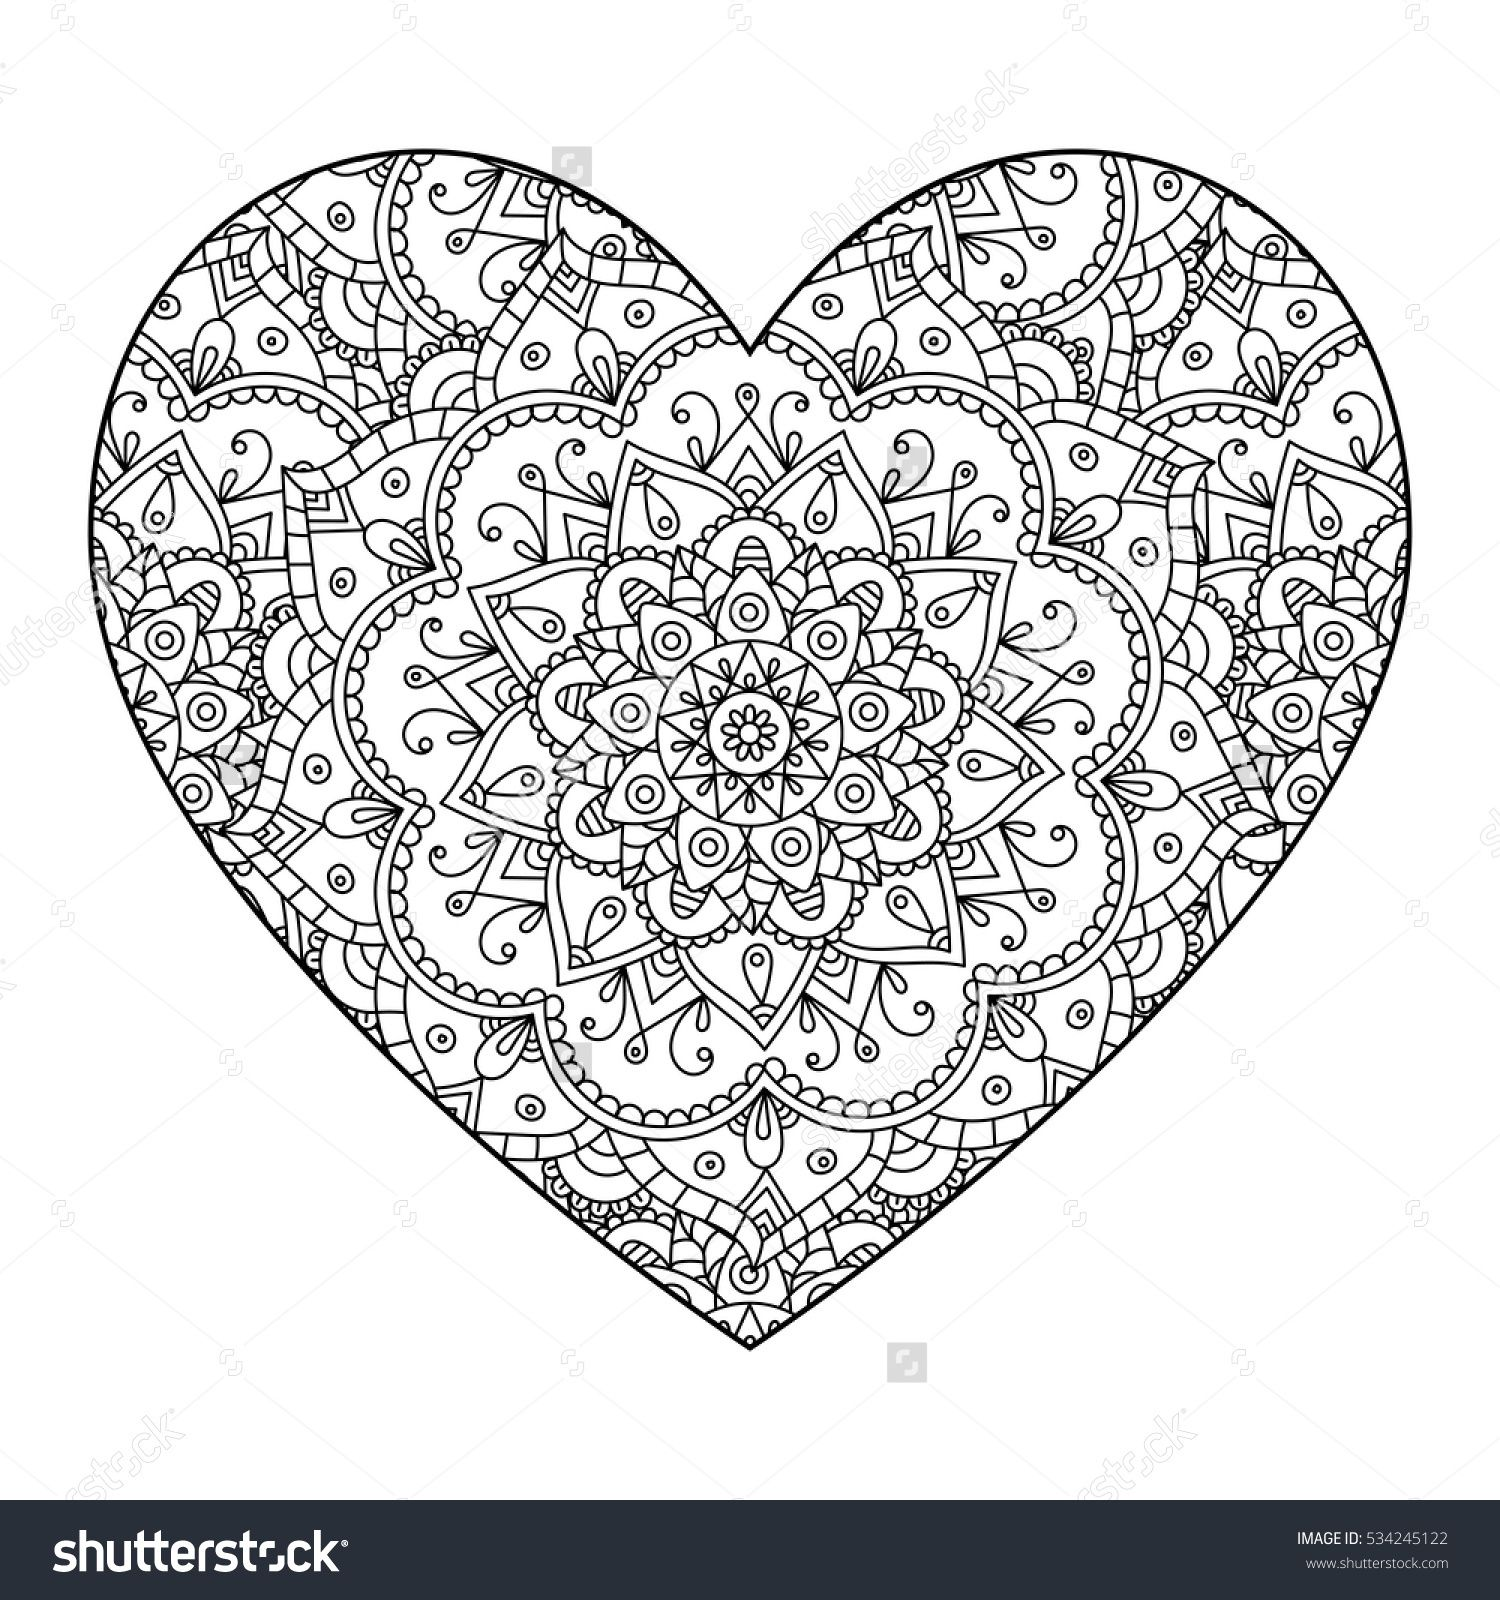 Vector Drawing Of A Heart With A Mandala Pattern Isolated On